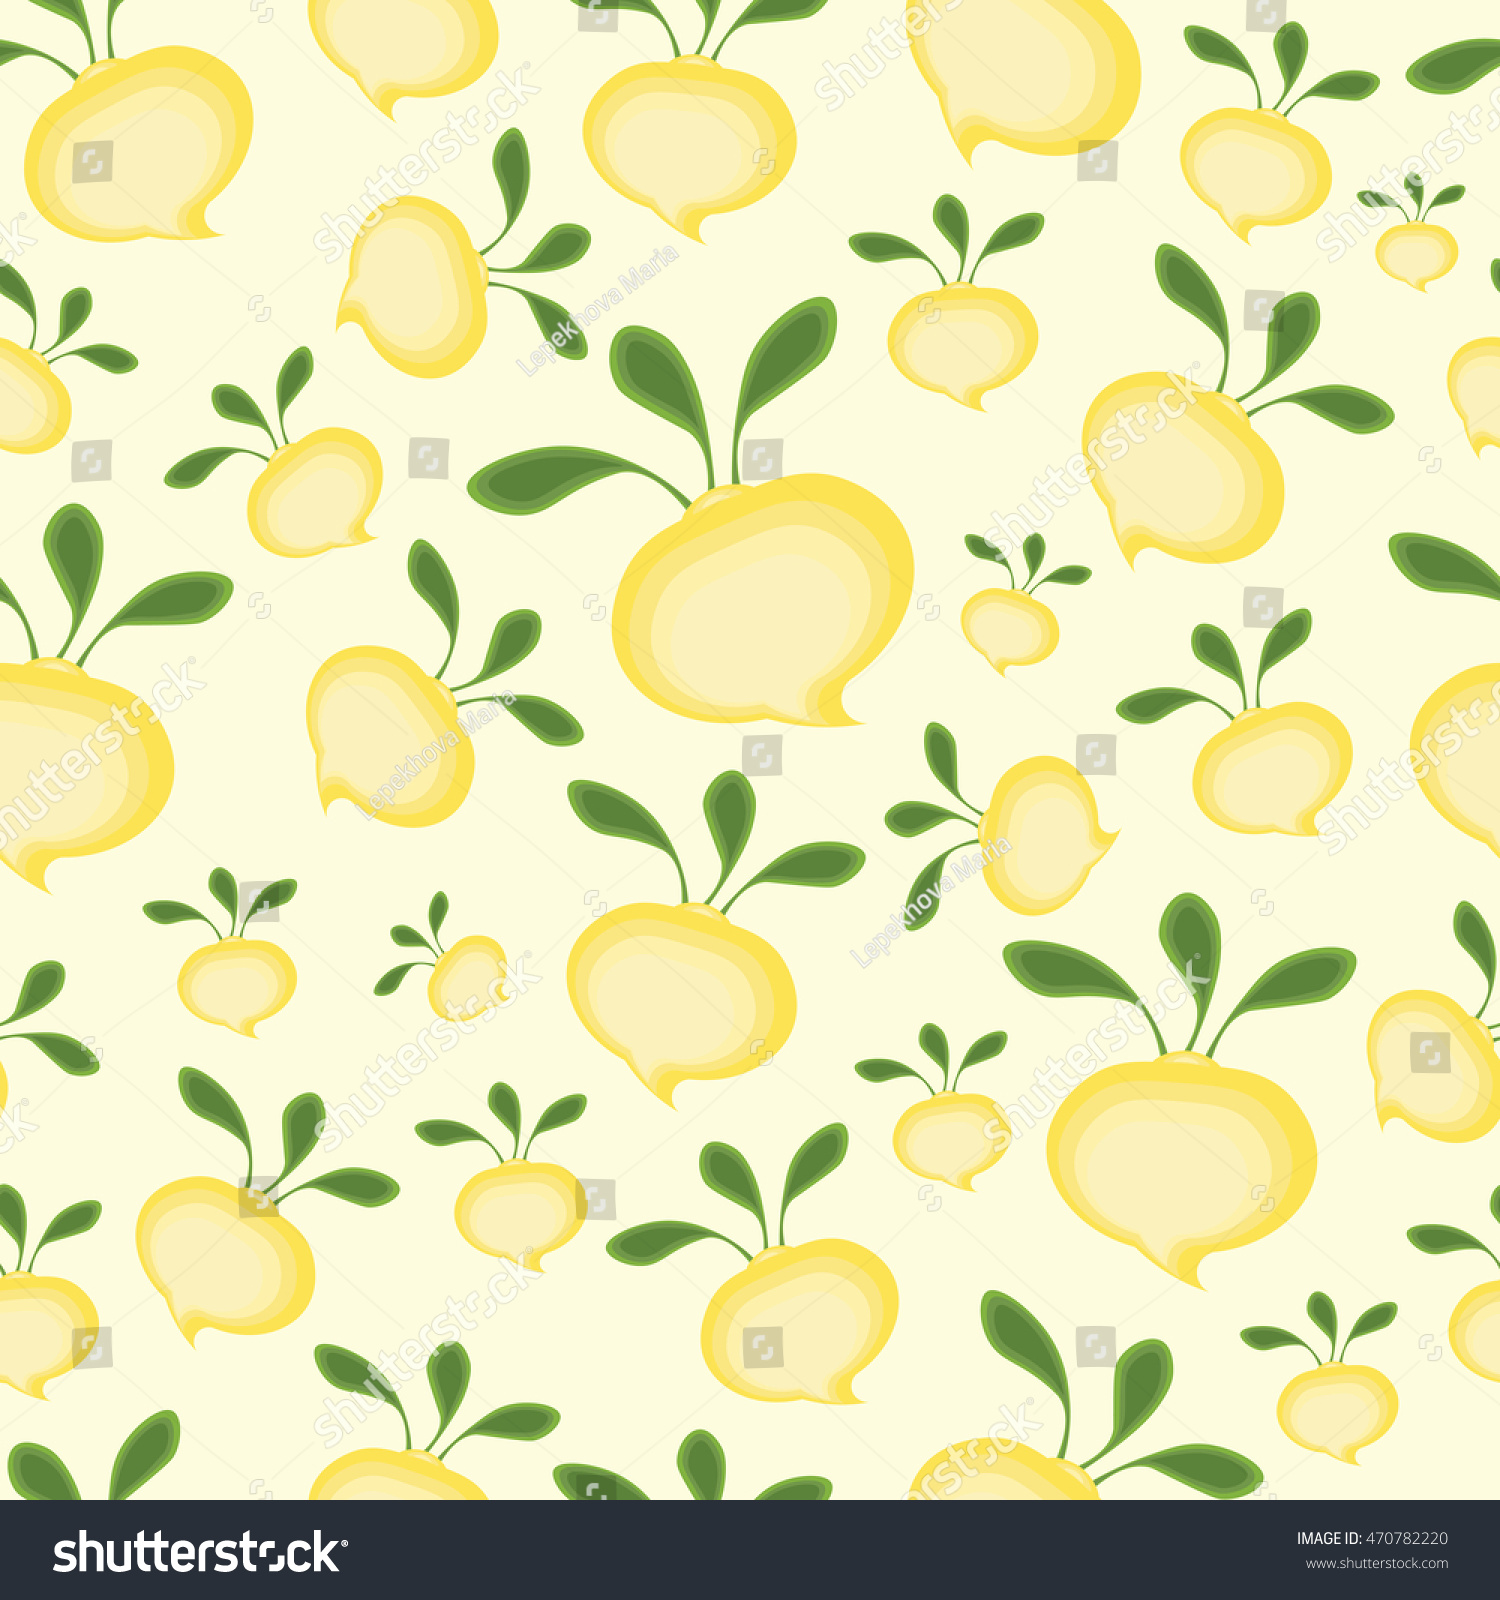 08082a2c2ab Background Abstract Cartoon Yellow Turnips Green Stock Vector ...